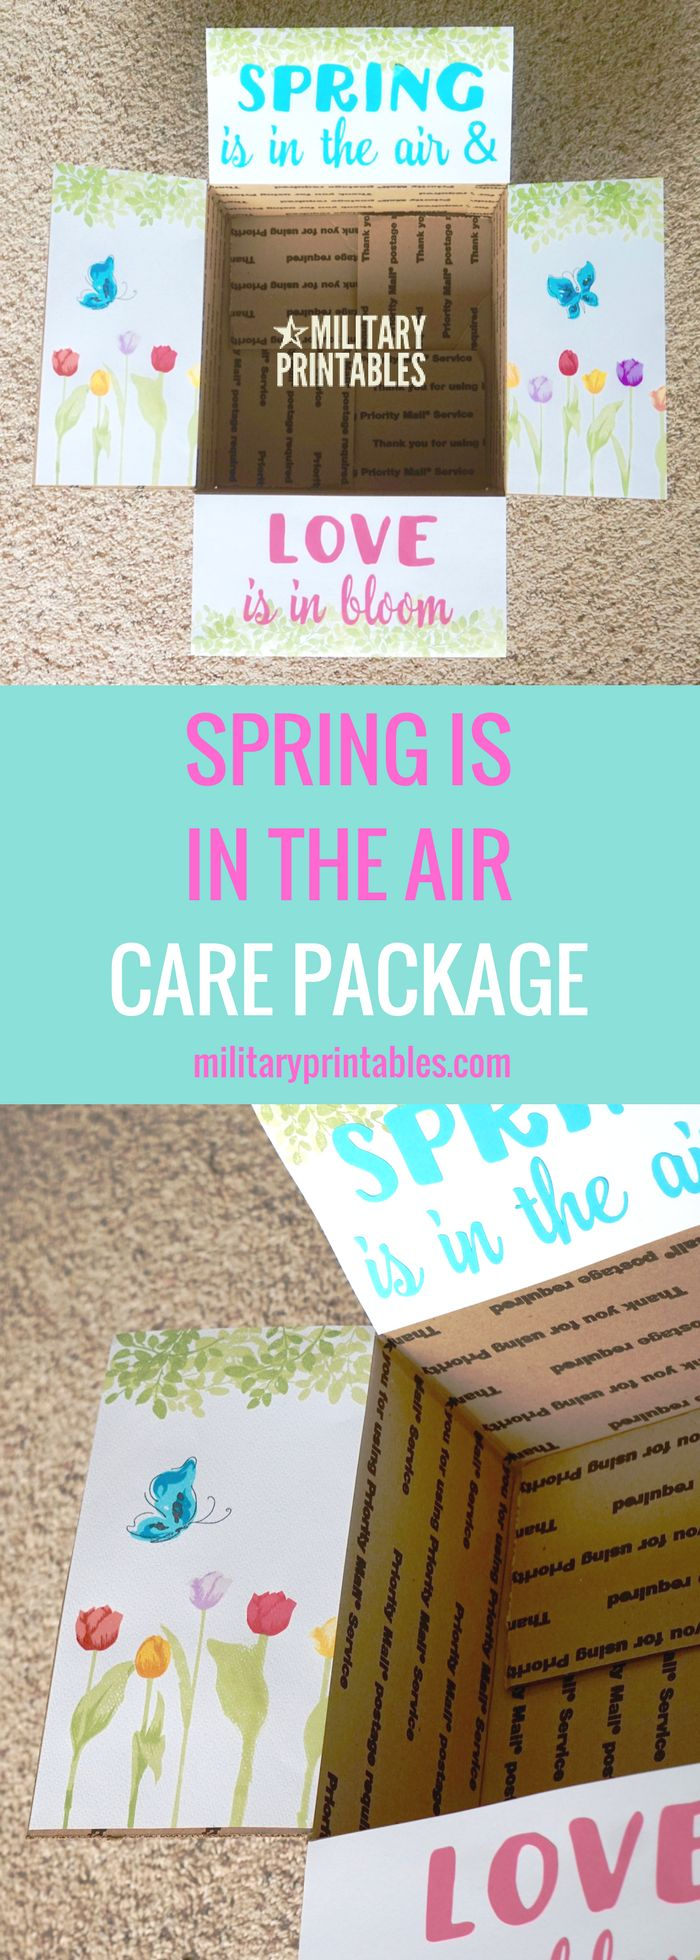 36 best adopt a soldier images on pinterest deployment care care package spring love flower colorful easter negle Images